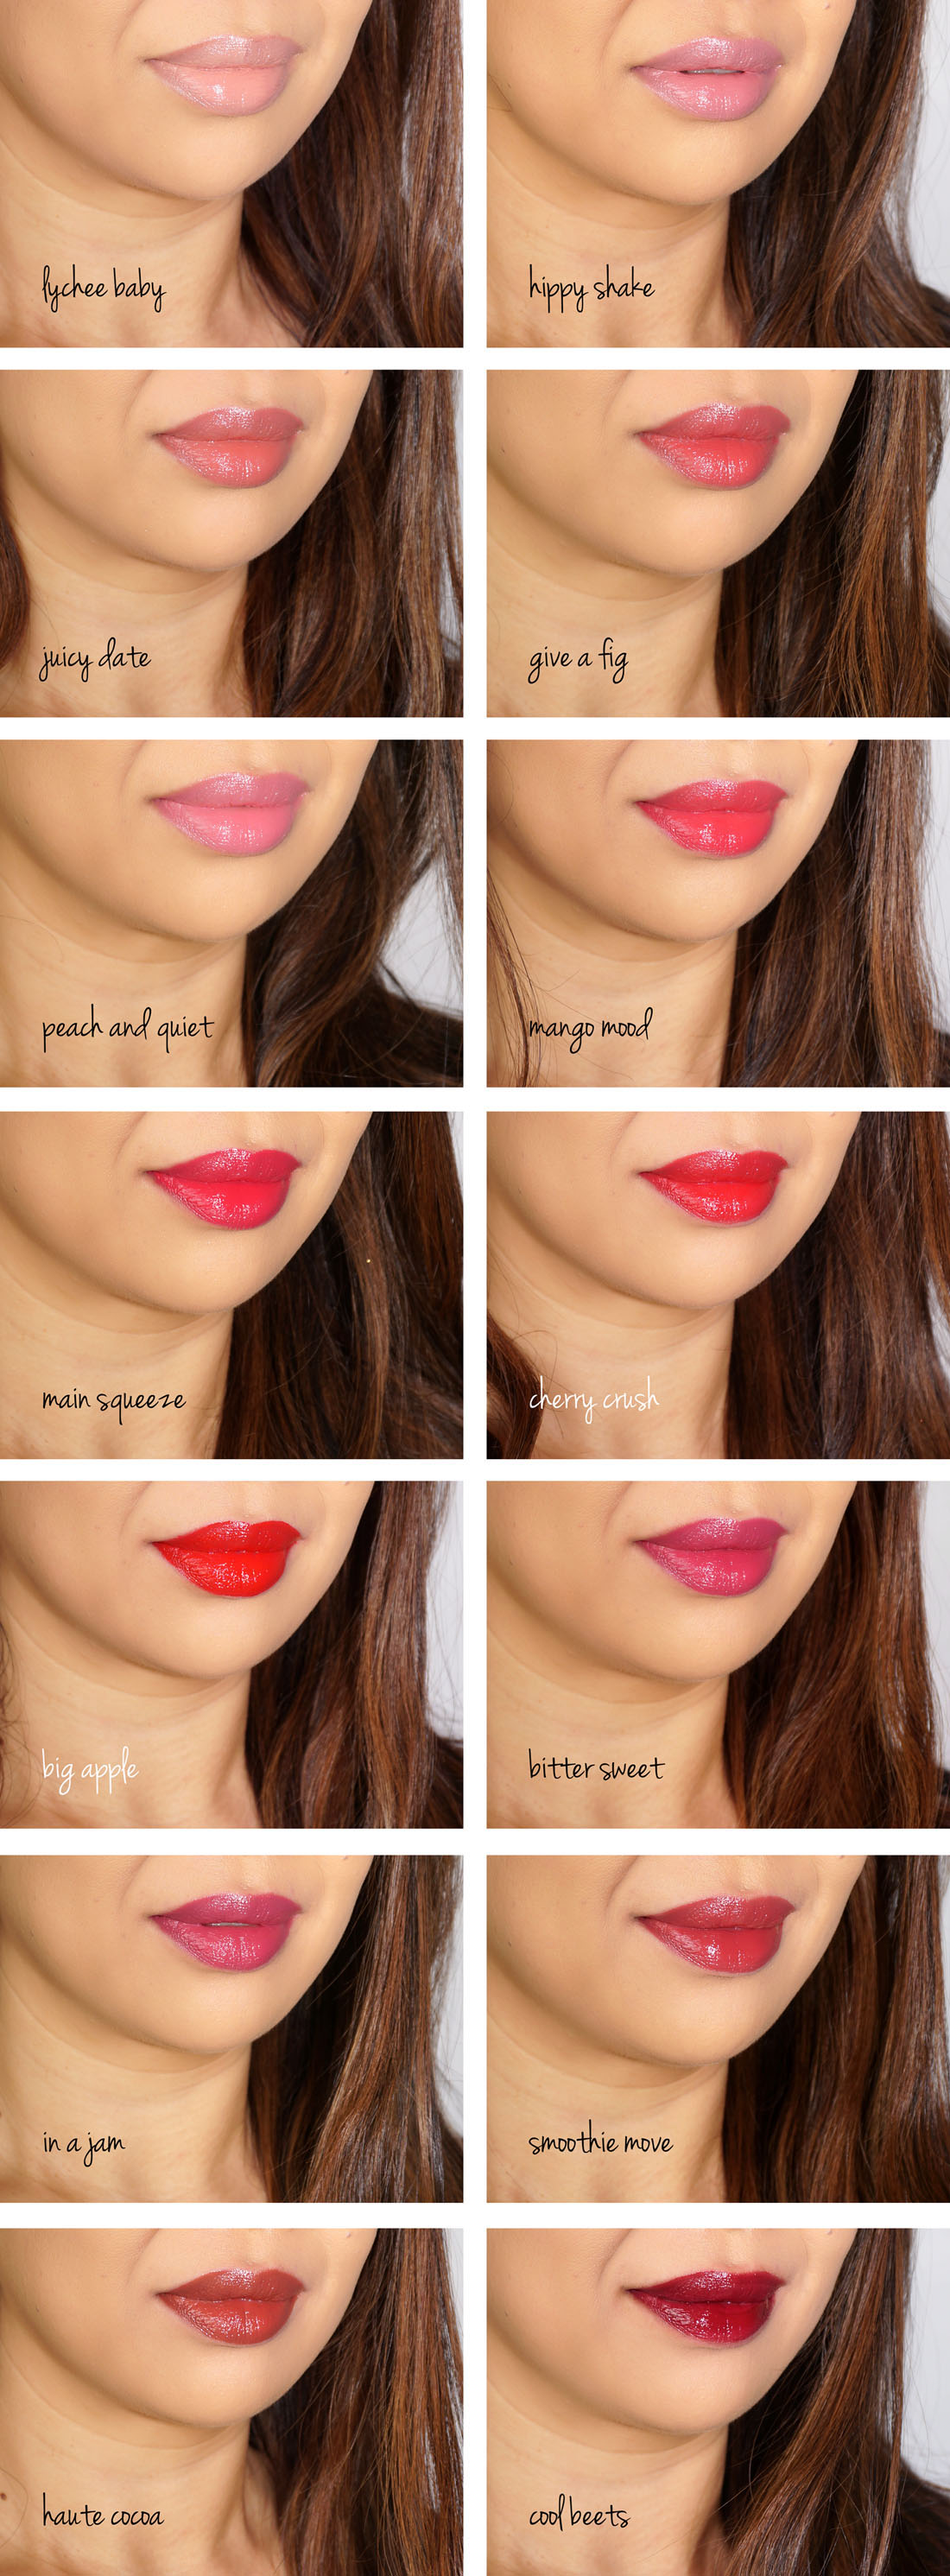 Bobbi Brown Crushed Liquid Lip Balm Review Swatches | The Beauty Look Book